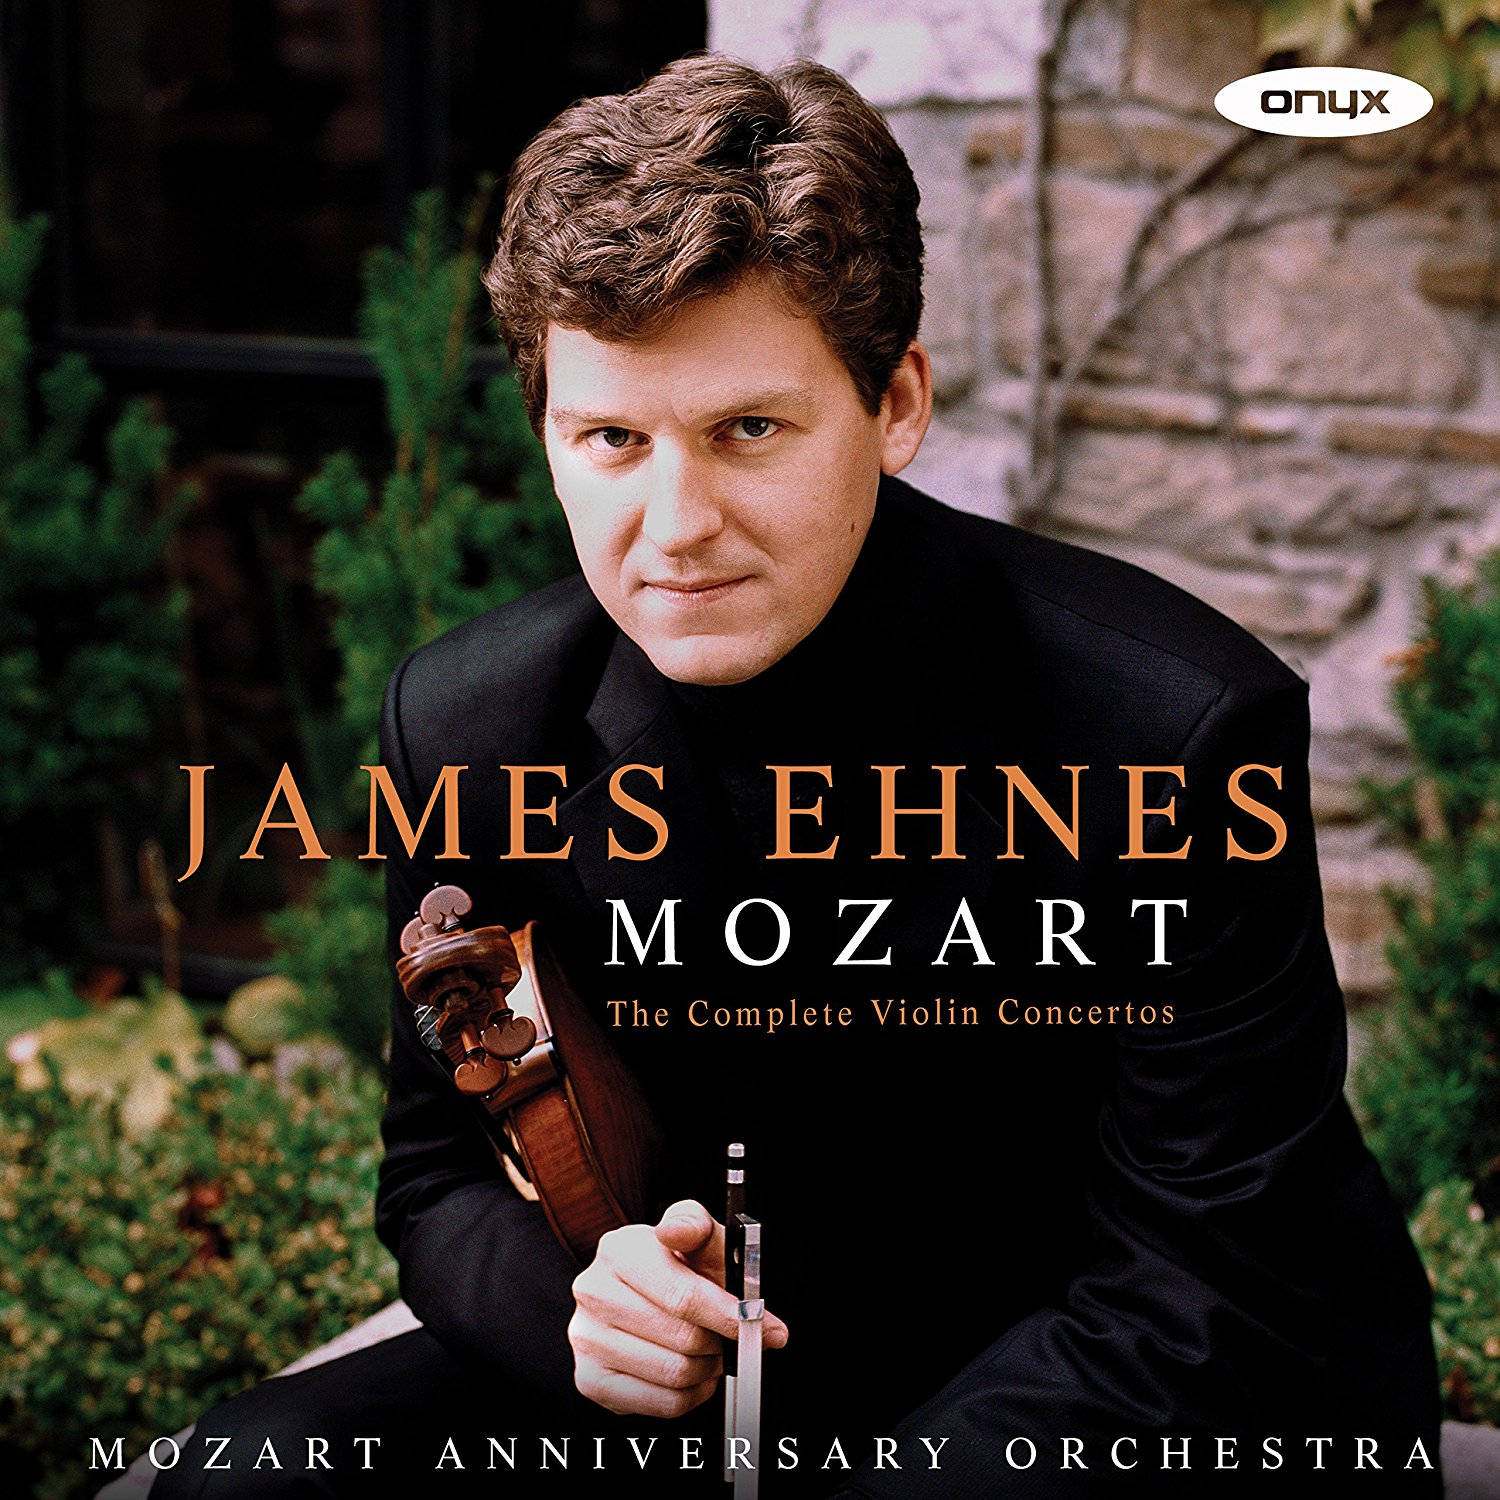 James Ehnes Mozart